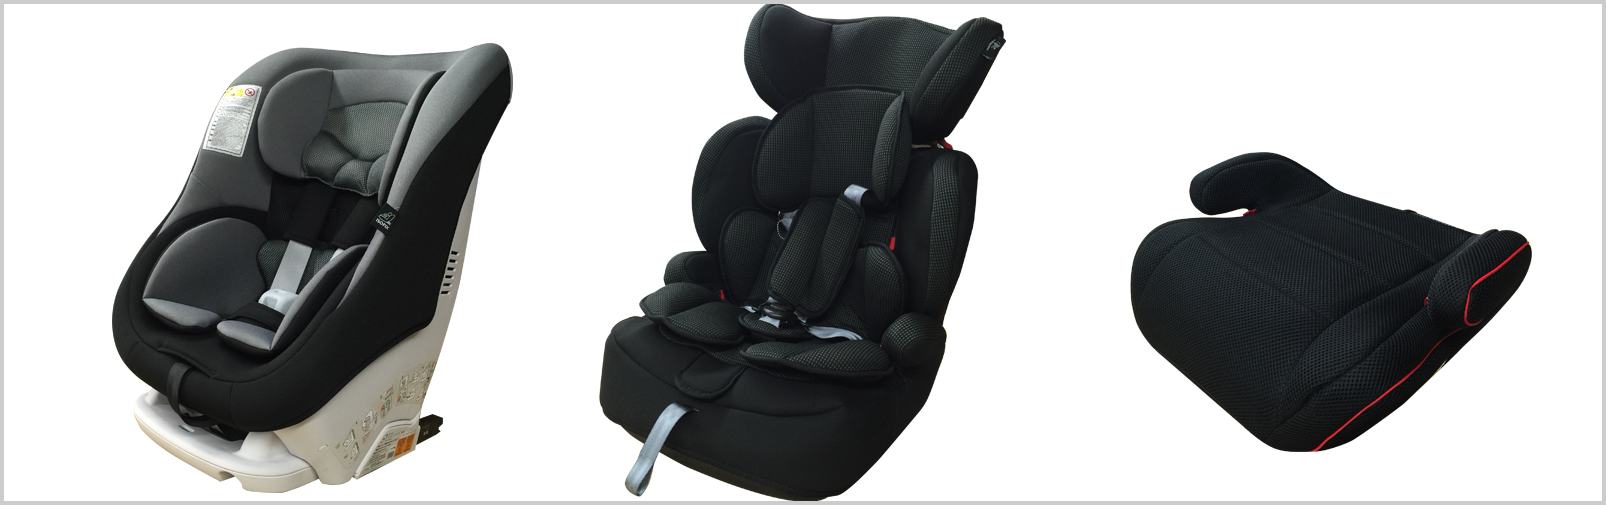 ETC card, child seat, junior seat and baby seat are also available for rent